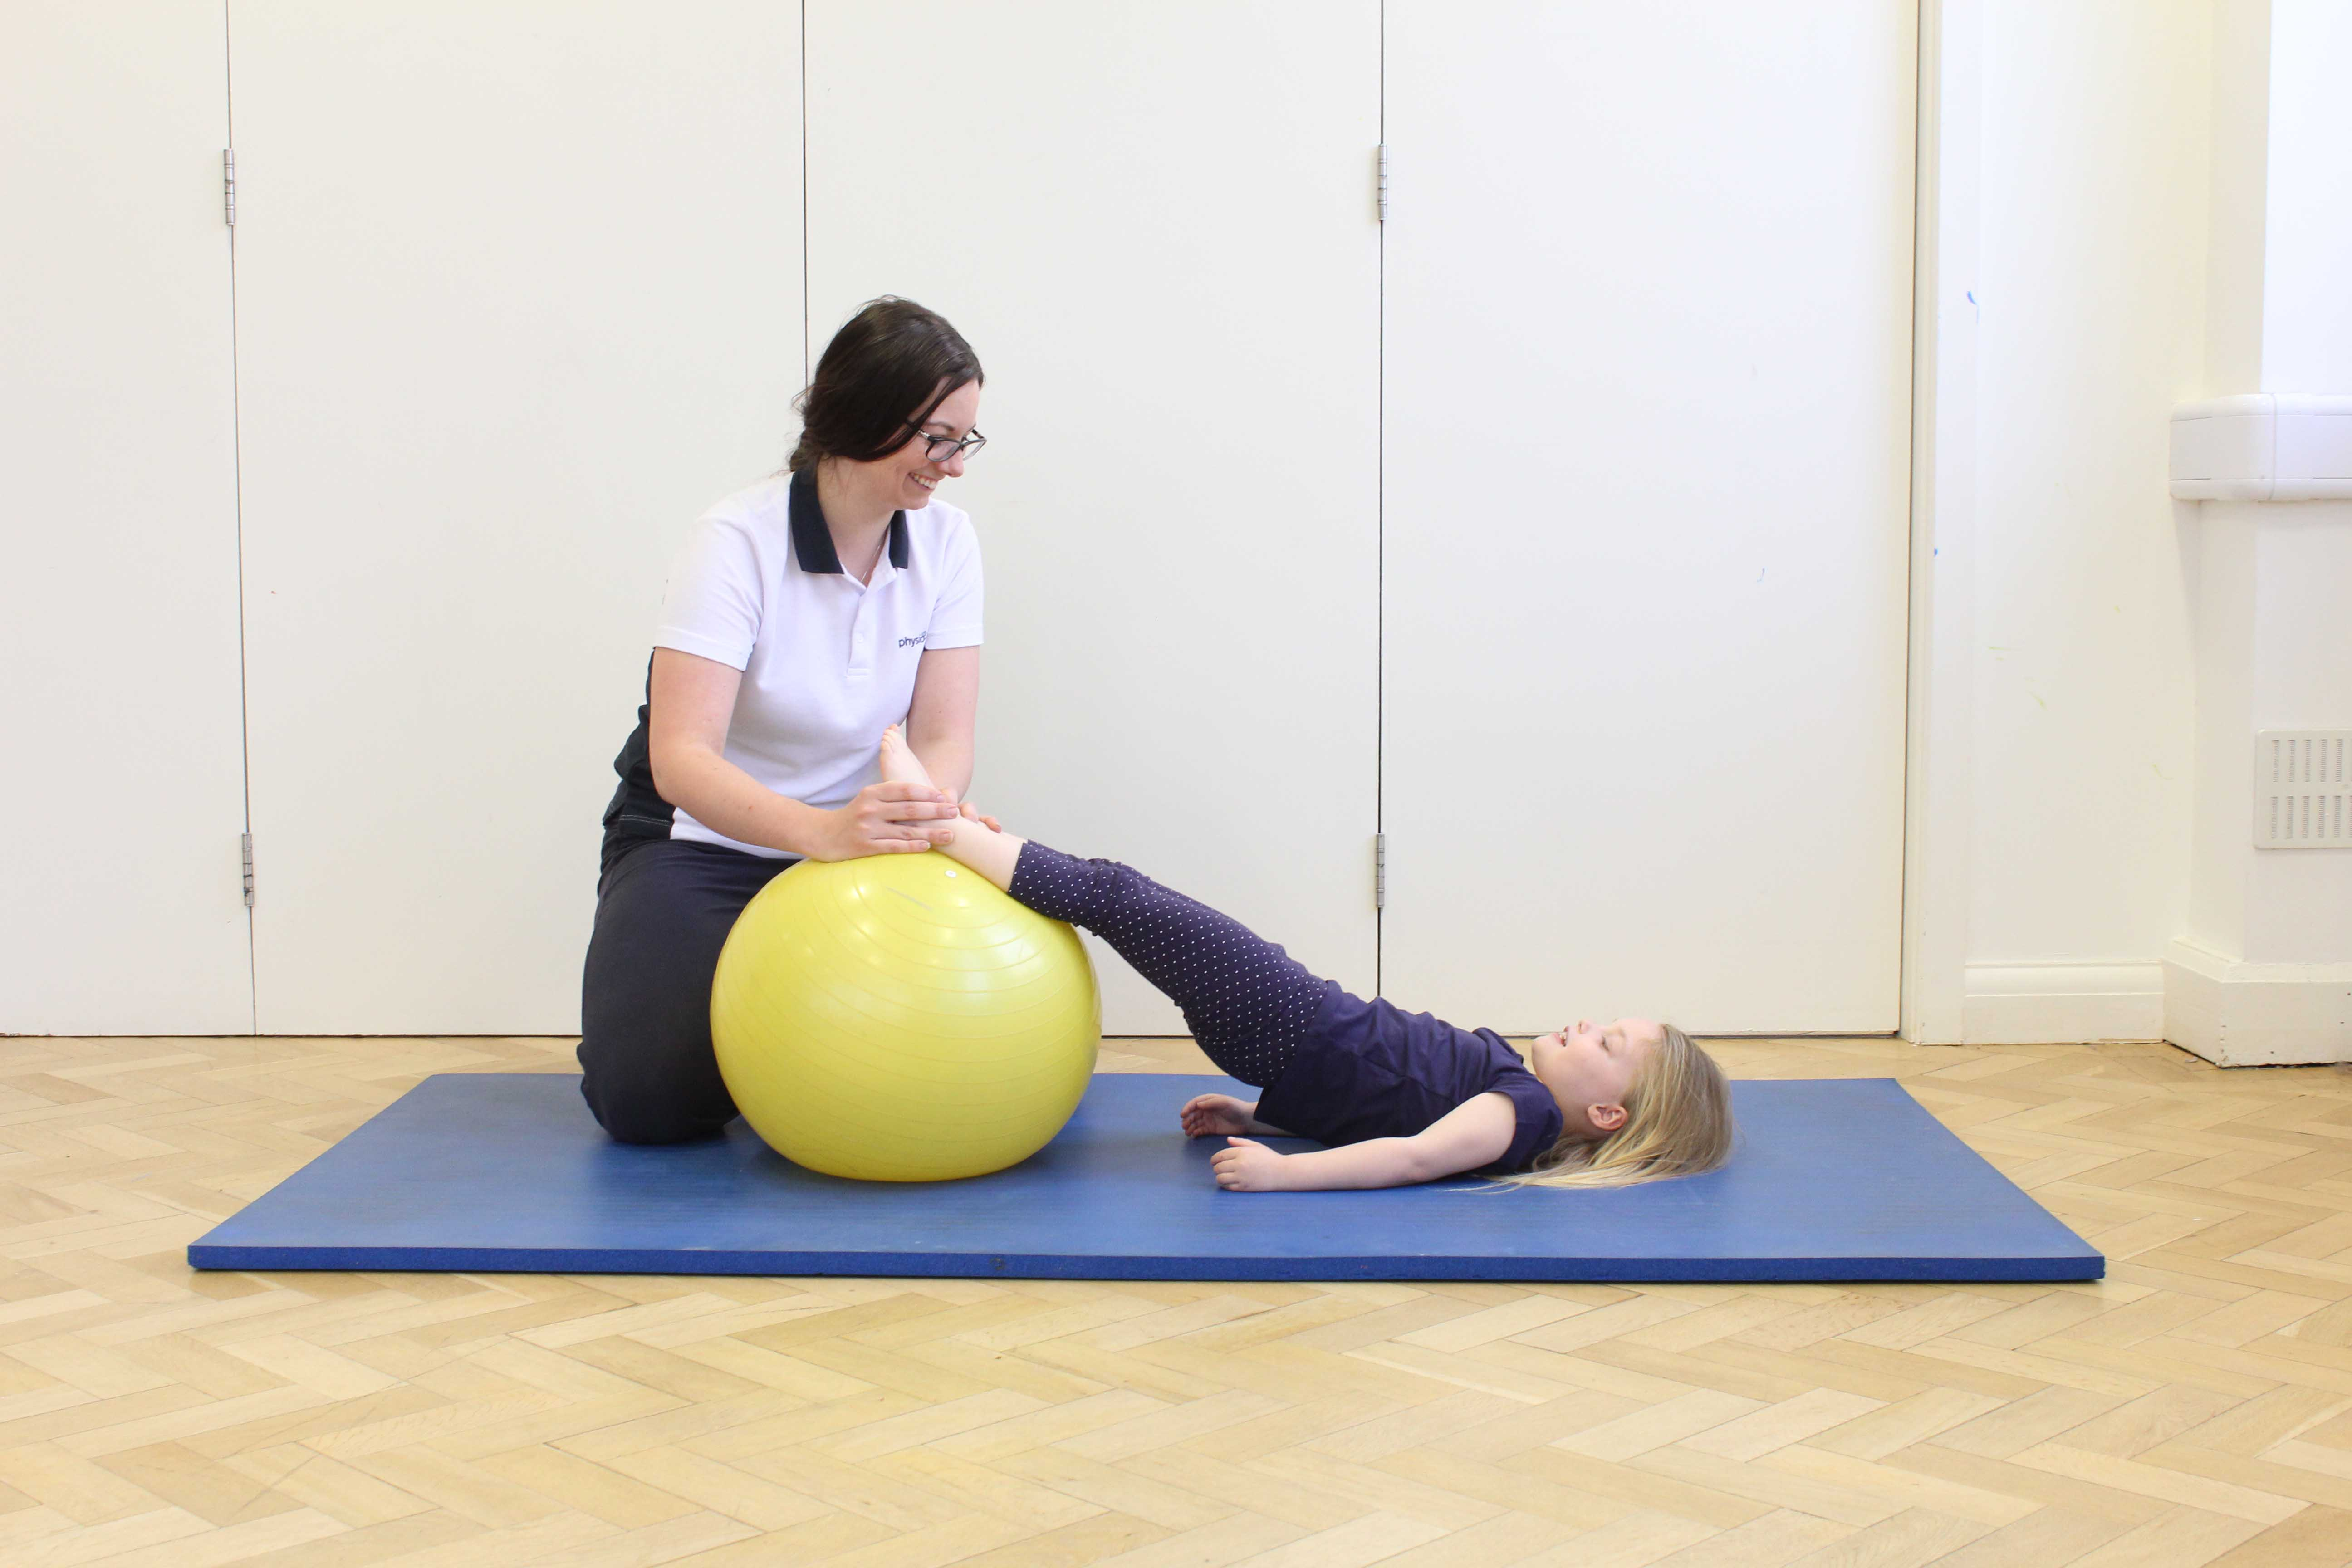 Soft tissue massage and stretches to relieve pain and stiffness